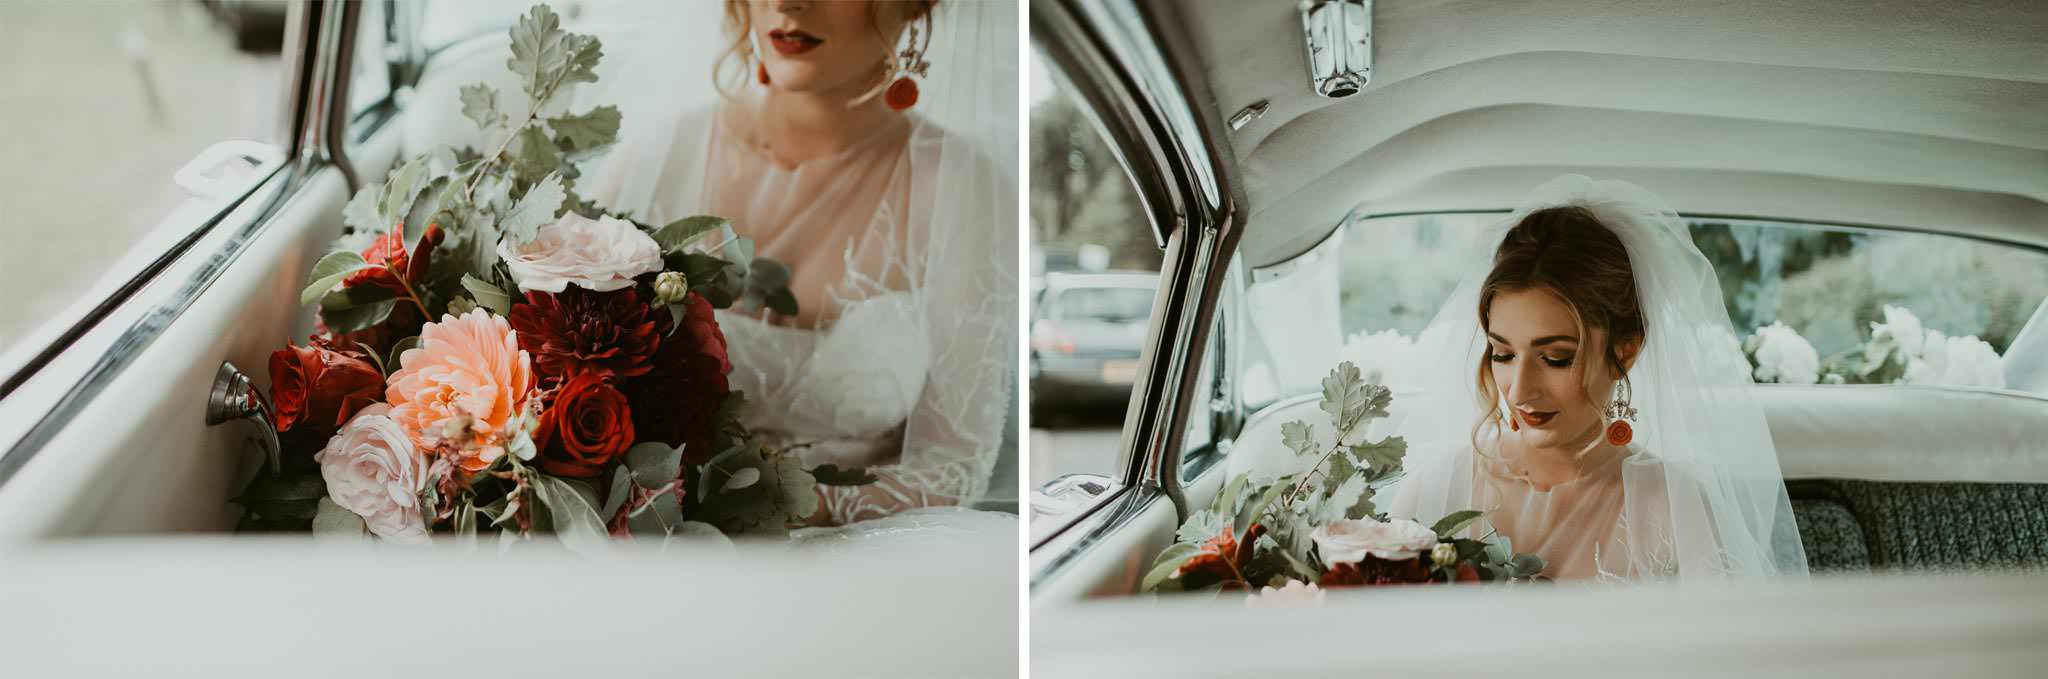 destination-wedding-photographer-051